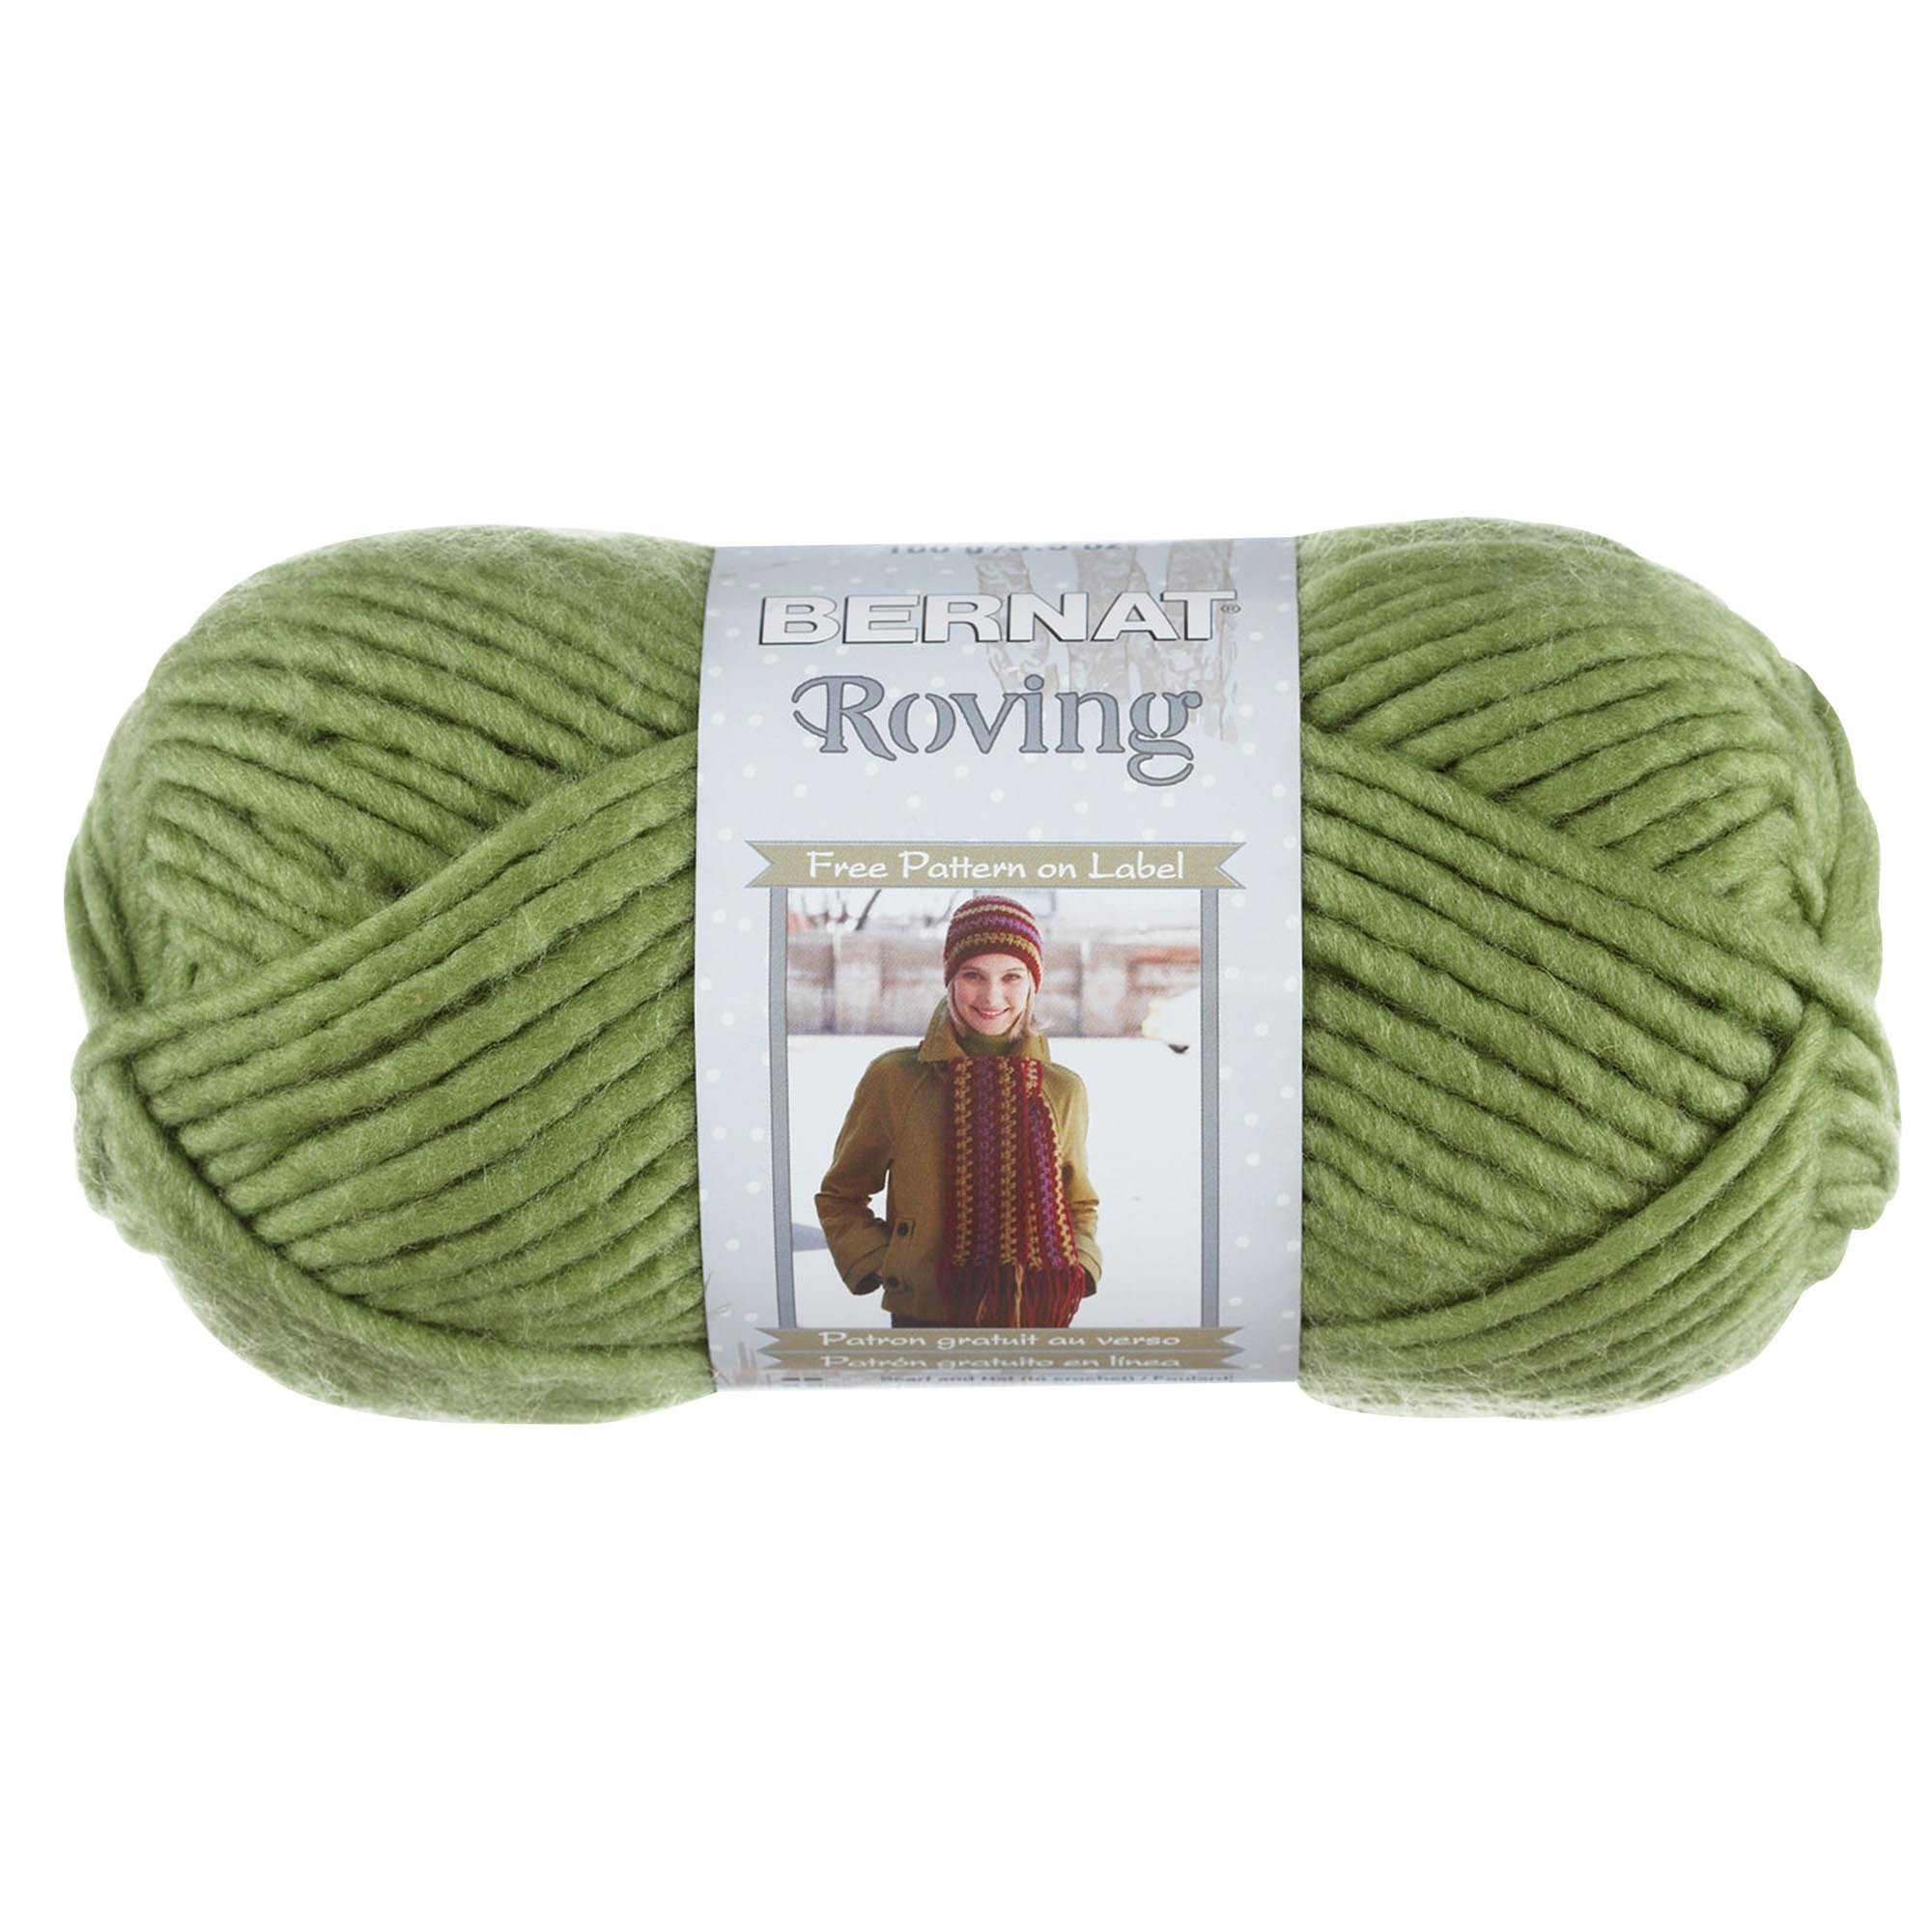 Awesome Bernat Roving Knitting Yarn 100g Bernat Roving Yarn Of Gorgeous 50 Models Bernat Roving Yarn